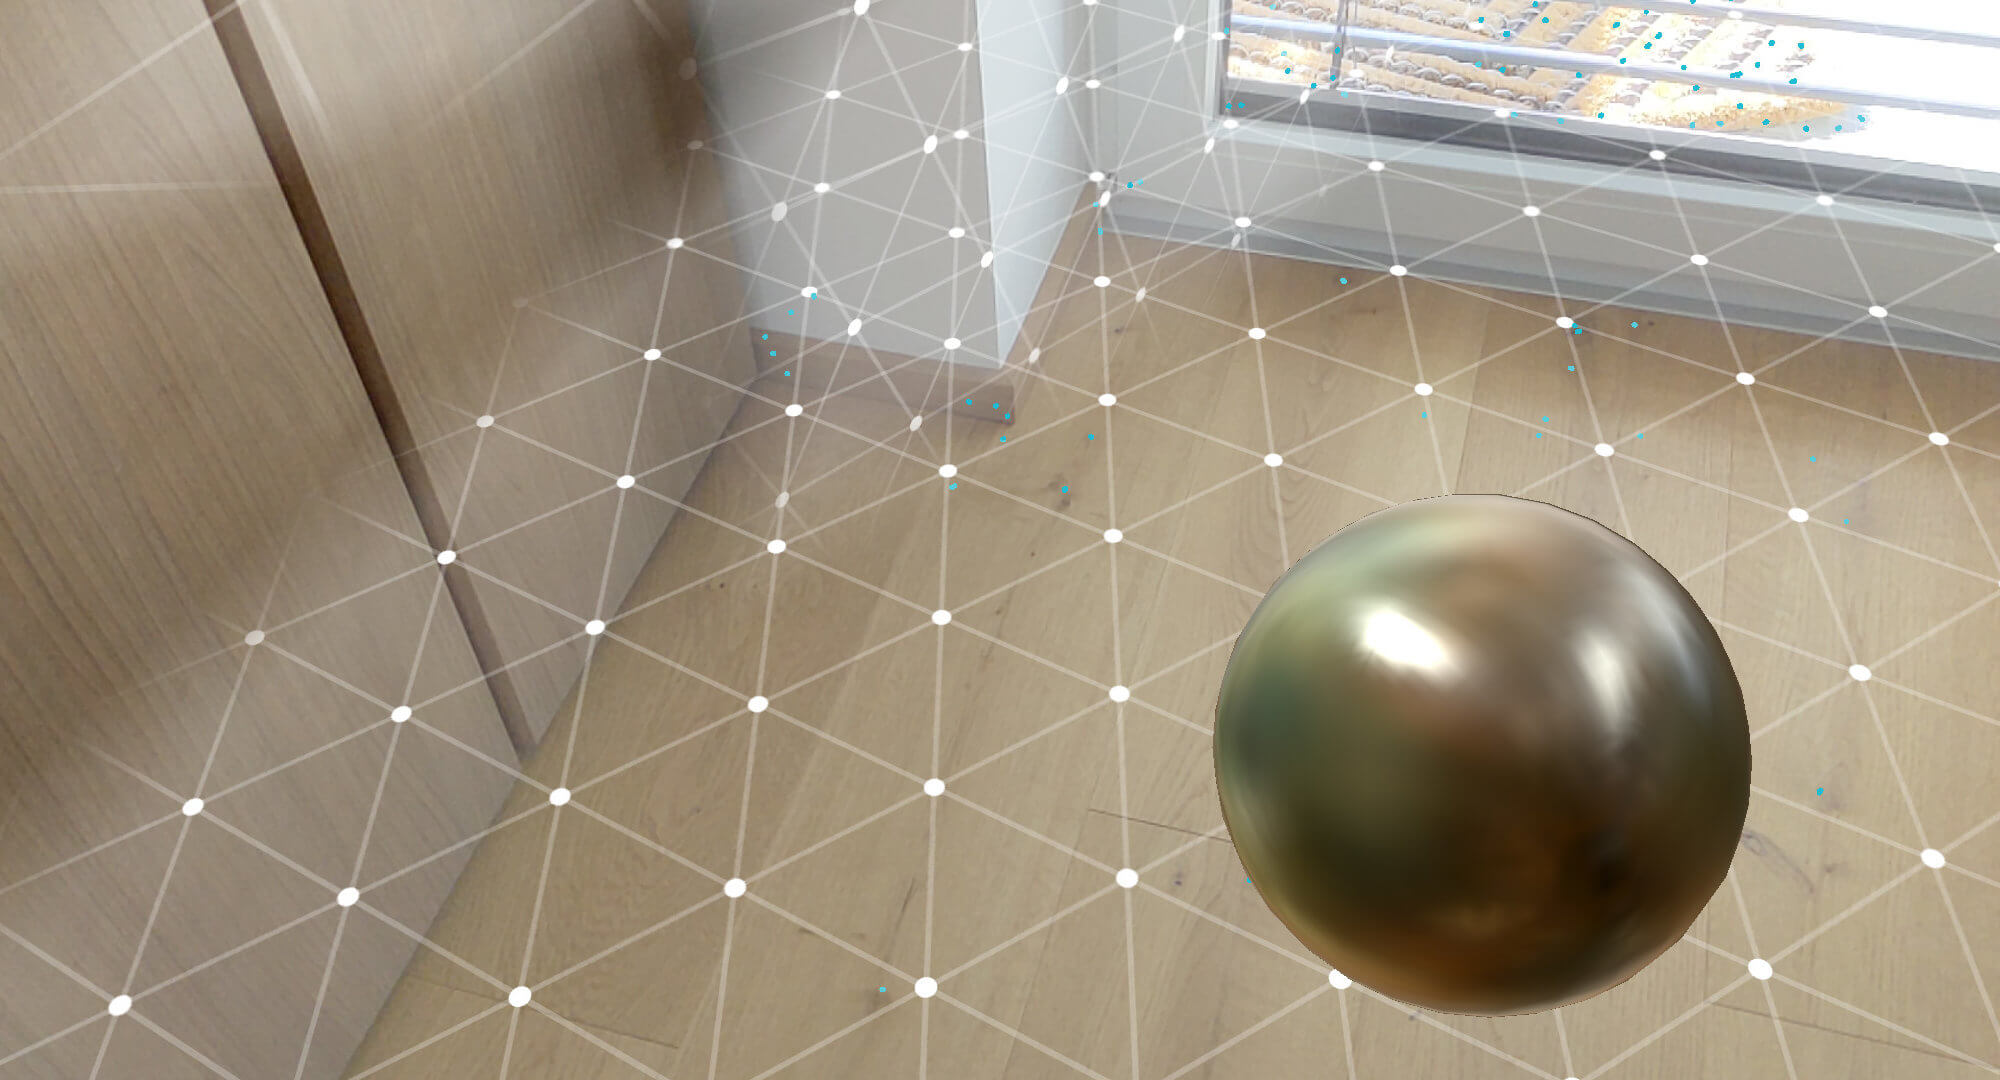 Screenshot of the reflective sphere placed in the real world, based on the Environmental HDR lighting by Google ARCore.